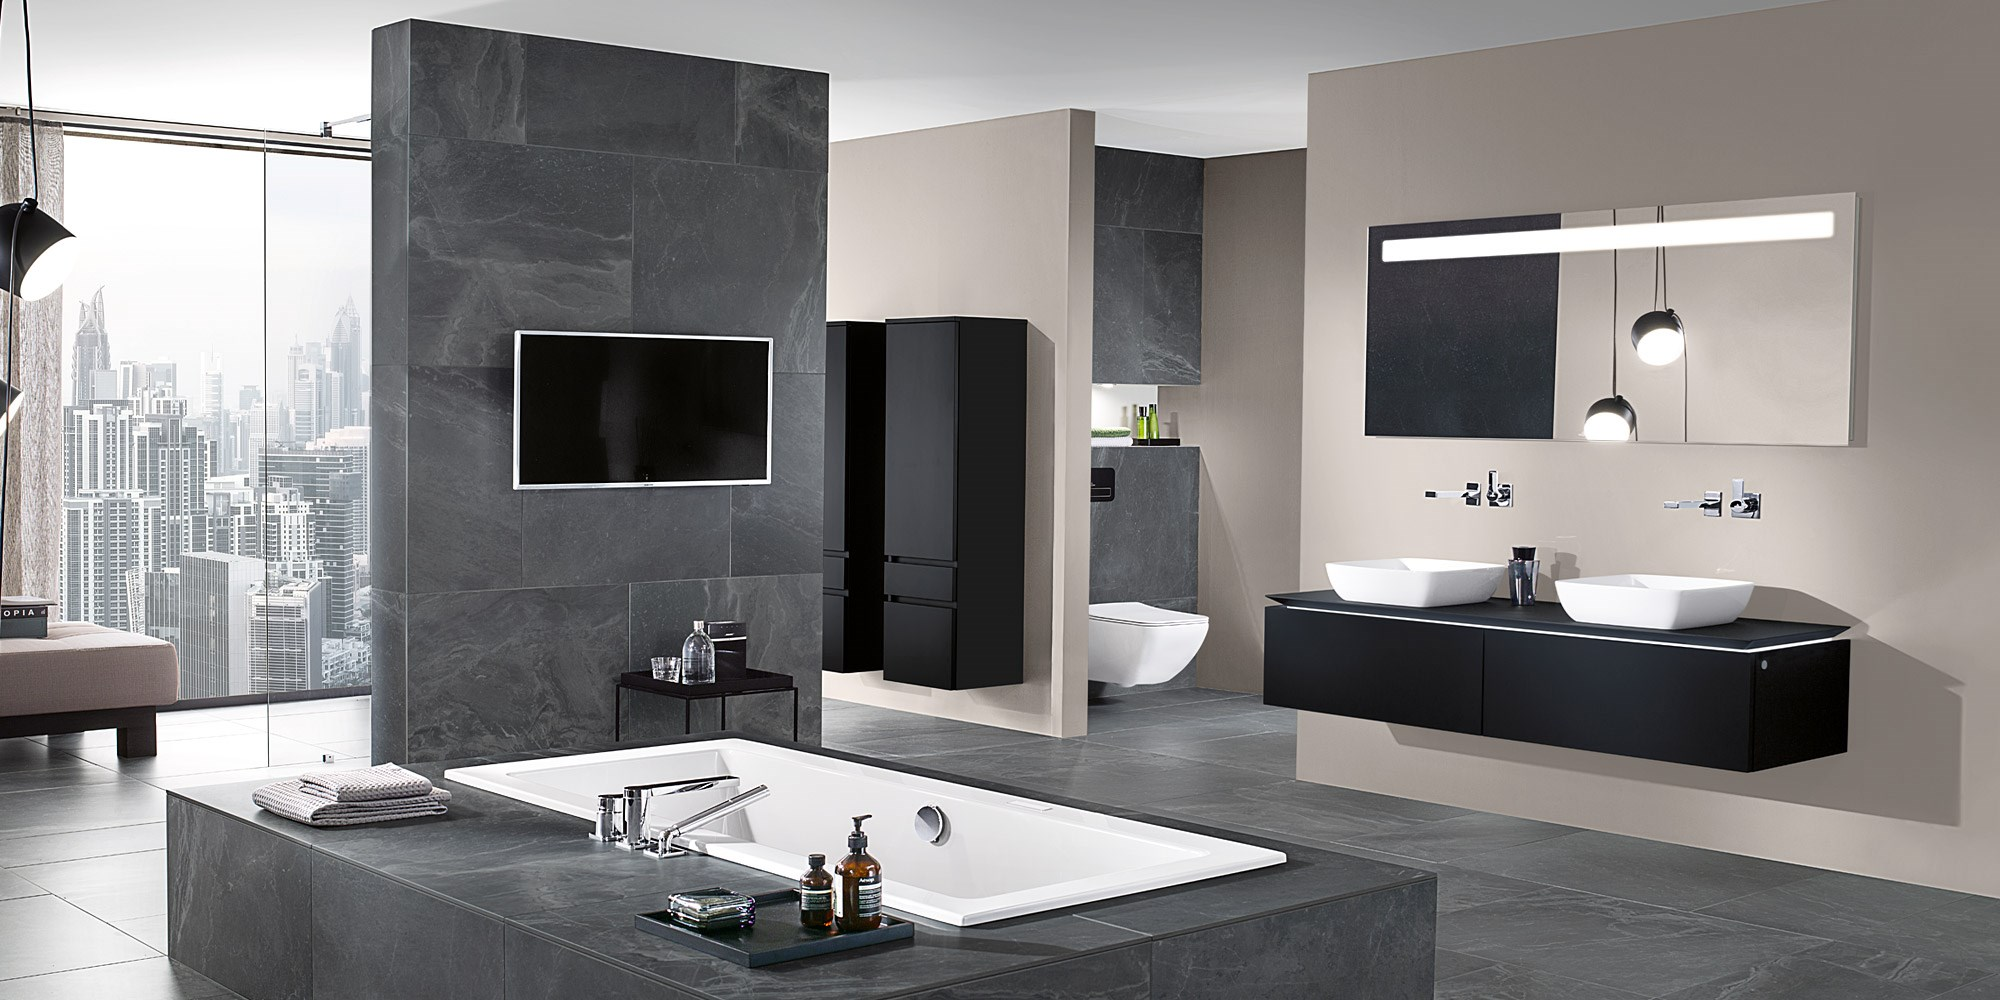 Villeroy & Boch Astoria Tiles - Supersized